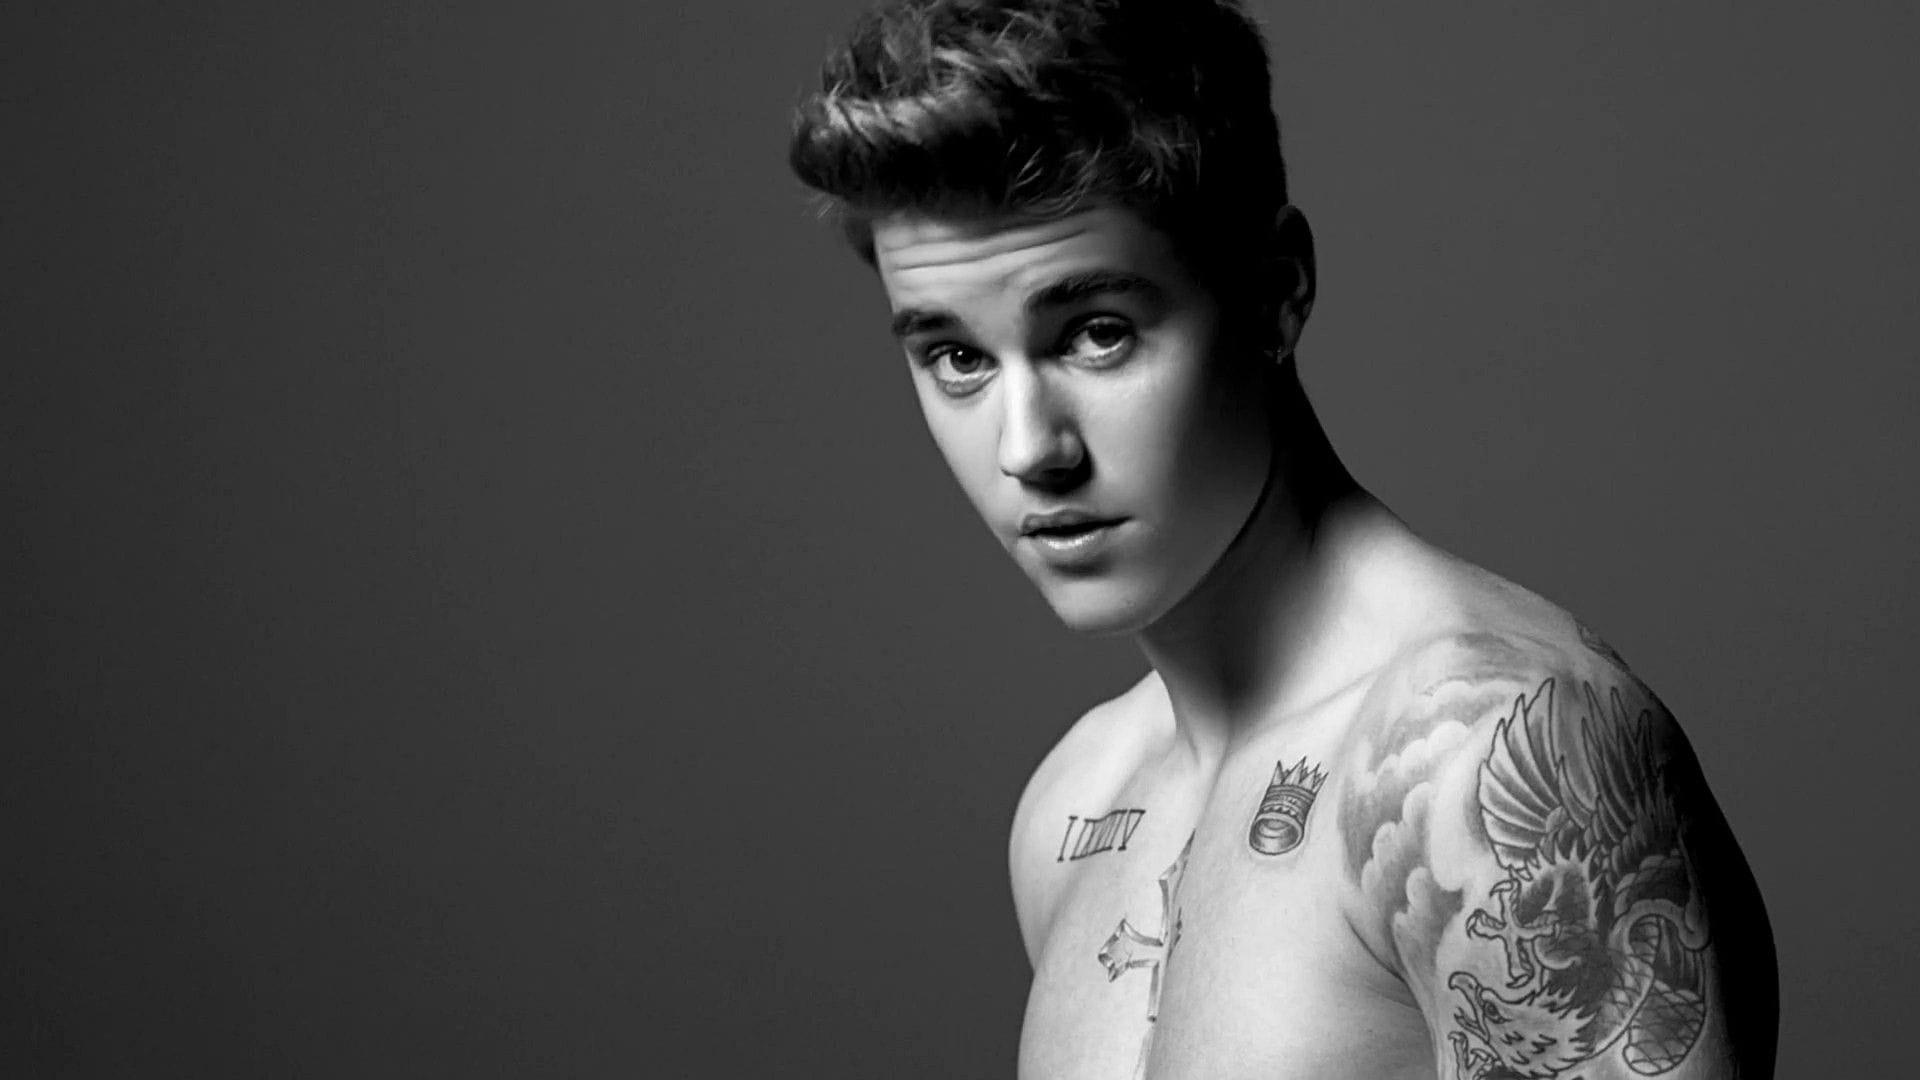 Justin Bieber widescreen wallpapers